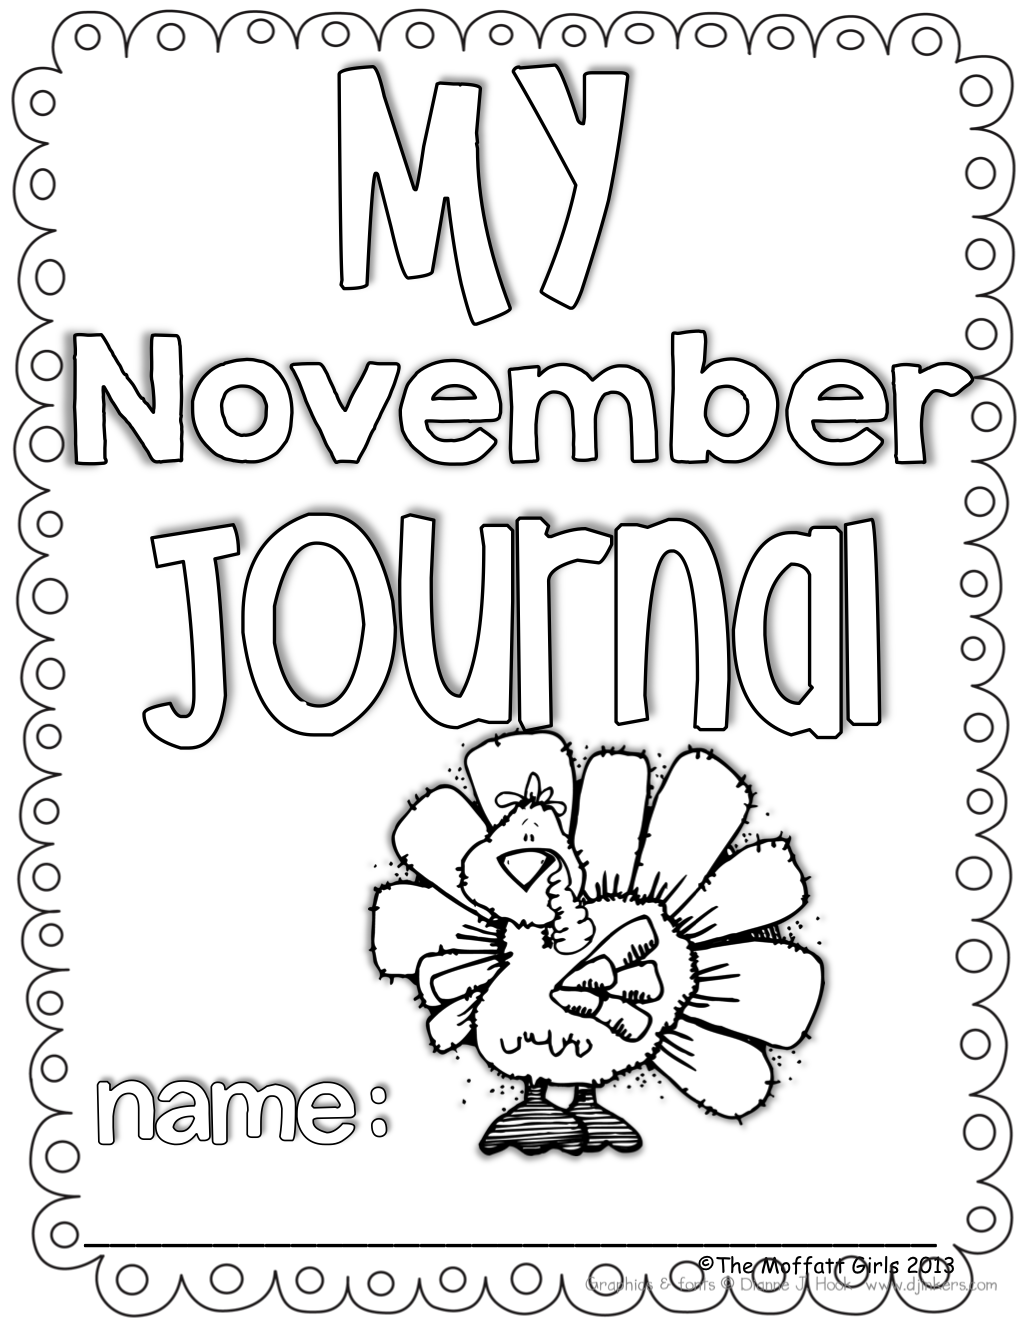 Daily Journal Prompts For November